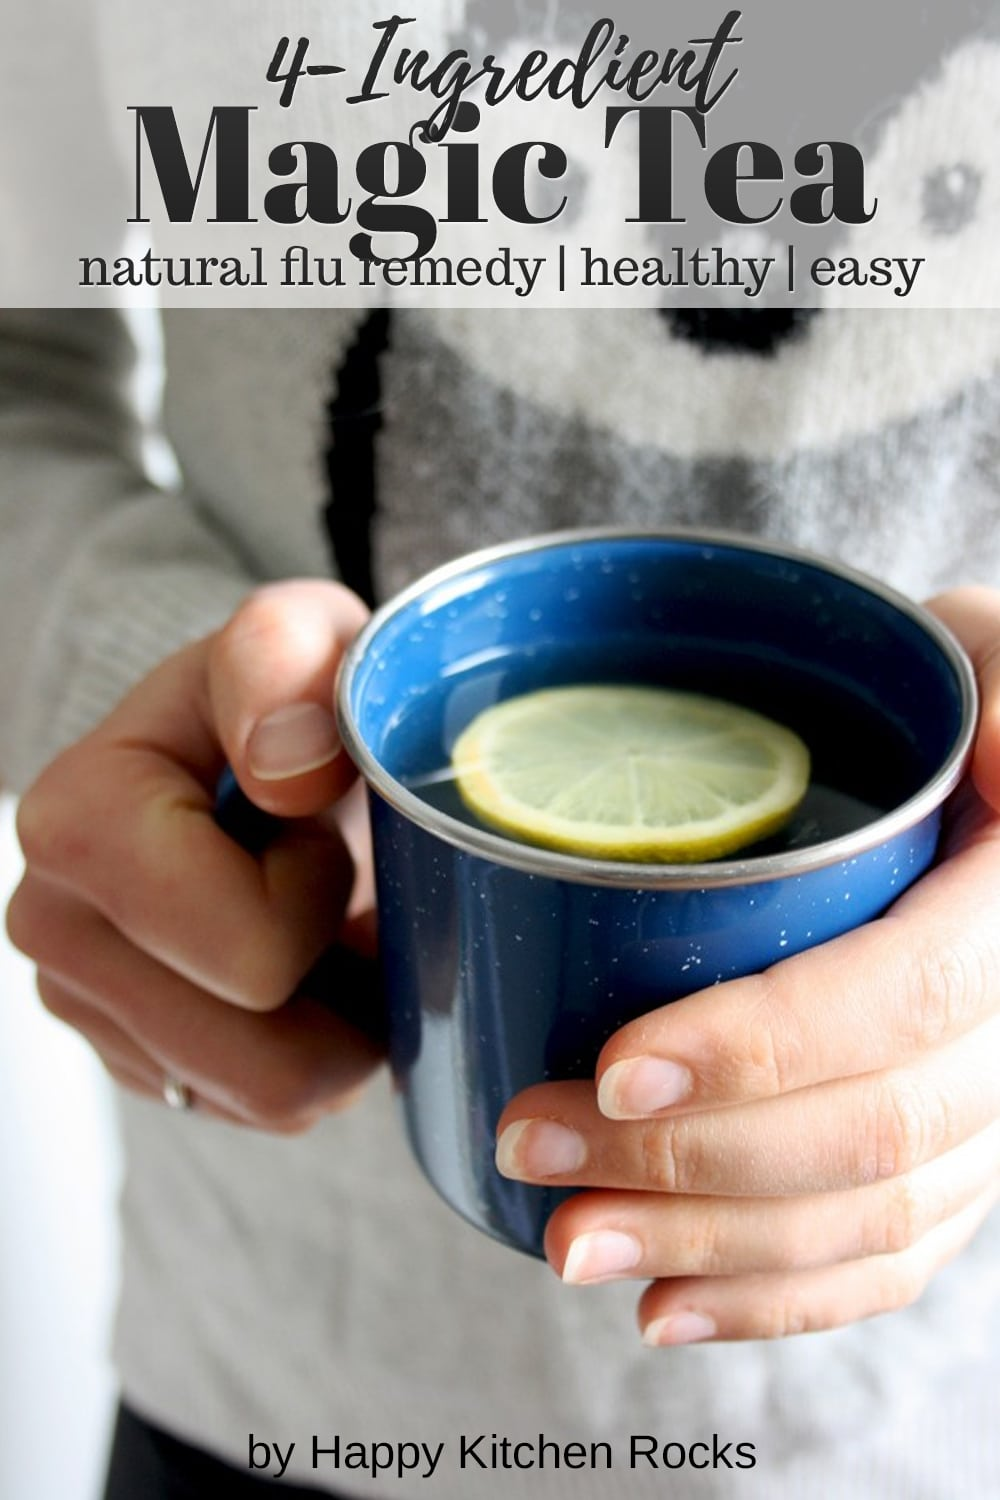 Natural Flu Remedy: Magic 4-Ingredient Tea Hands Collage with Text Overlay